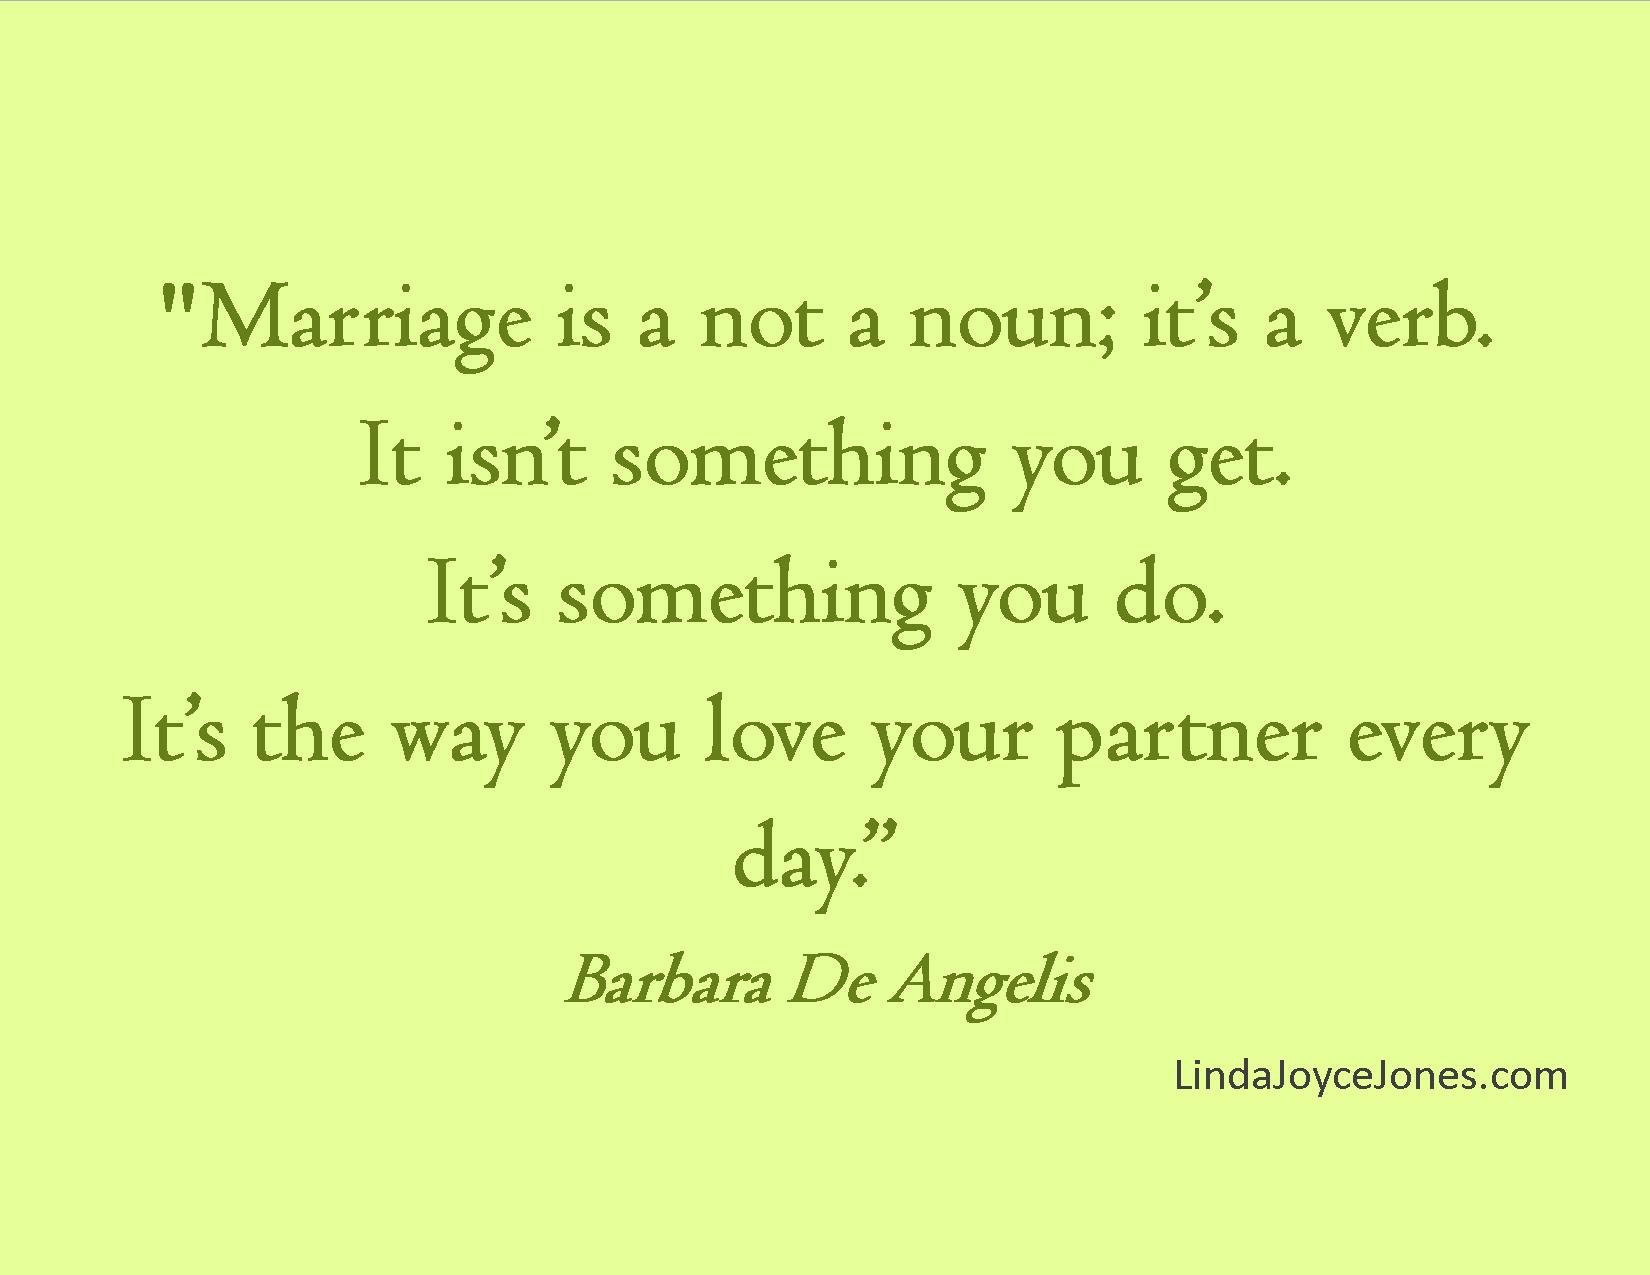 good marriage help quotes quotesgram - Definition Du Mariage Forc